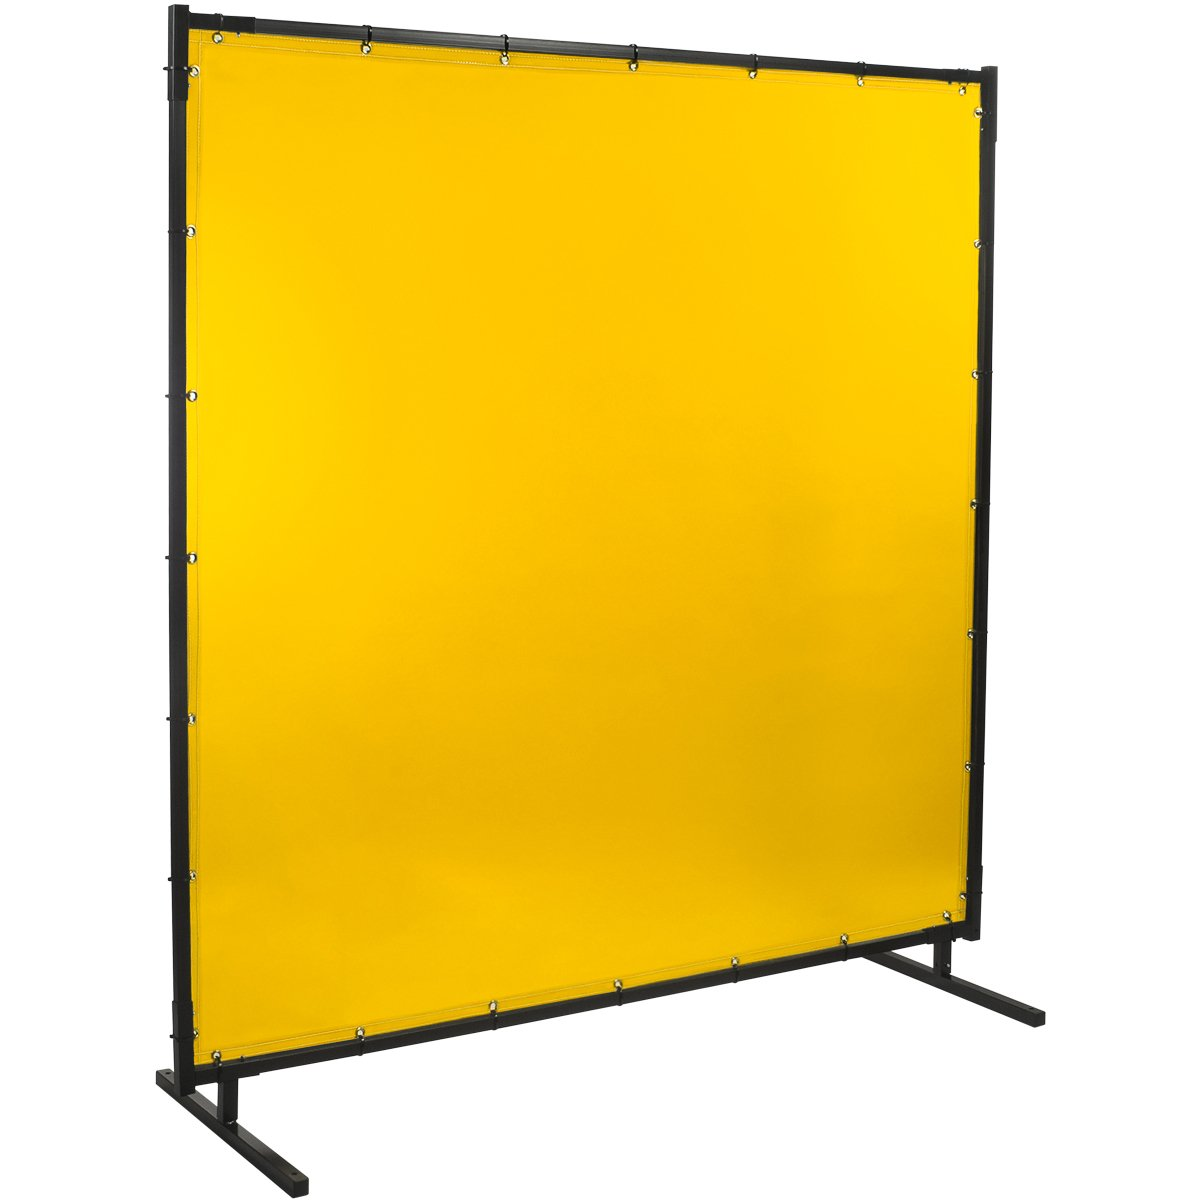 Steiner 534HD-6X6 Protect-O-Screen HD Welding Screen with Flame Retardant 14 mm Yellow Tinted Transparent Vinyl Curtain, 6' x 6'